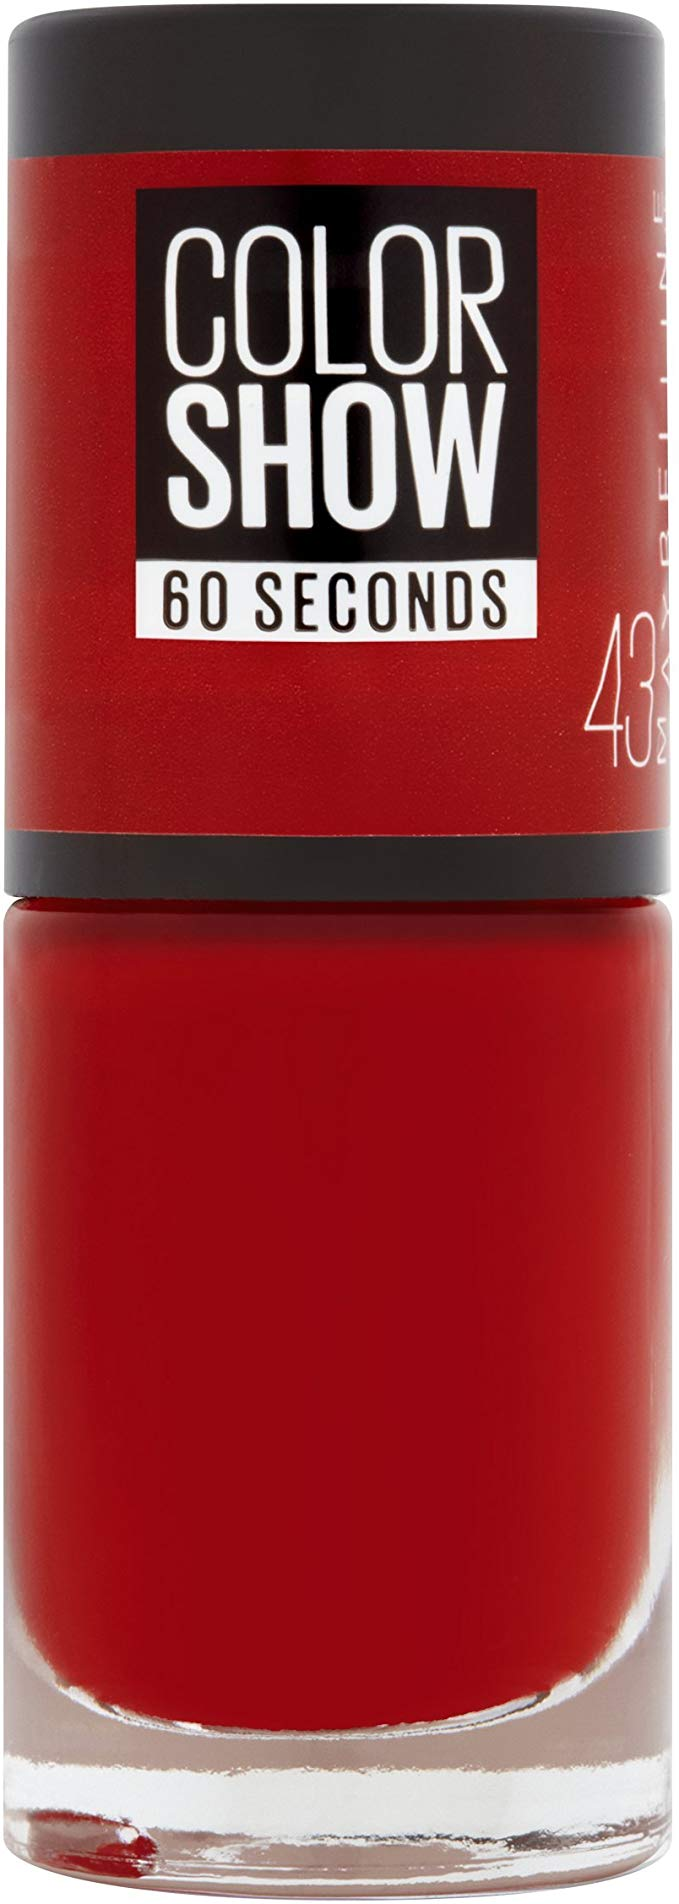 Maybelline  - Vernis à ongles colorshow (43) - Rouge Profond - 6,7ml